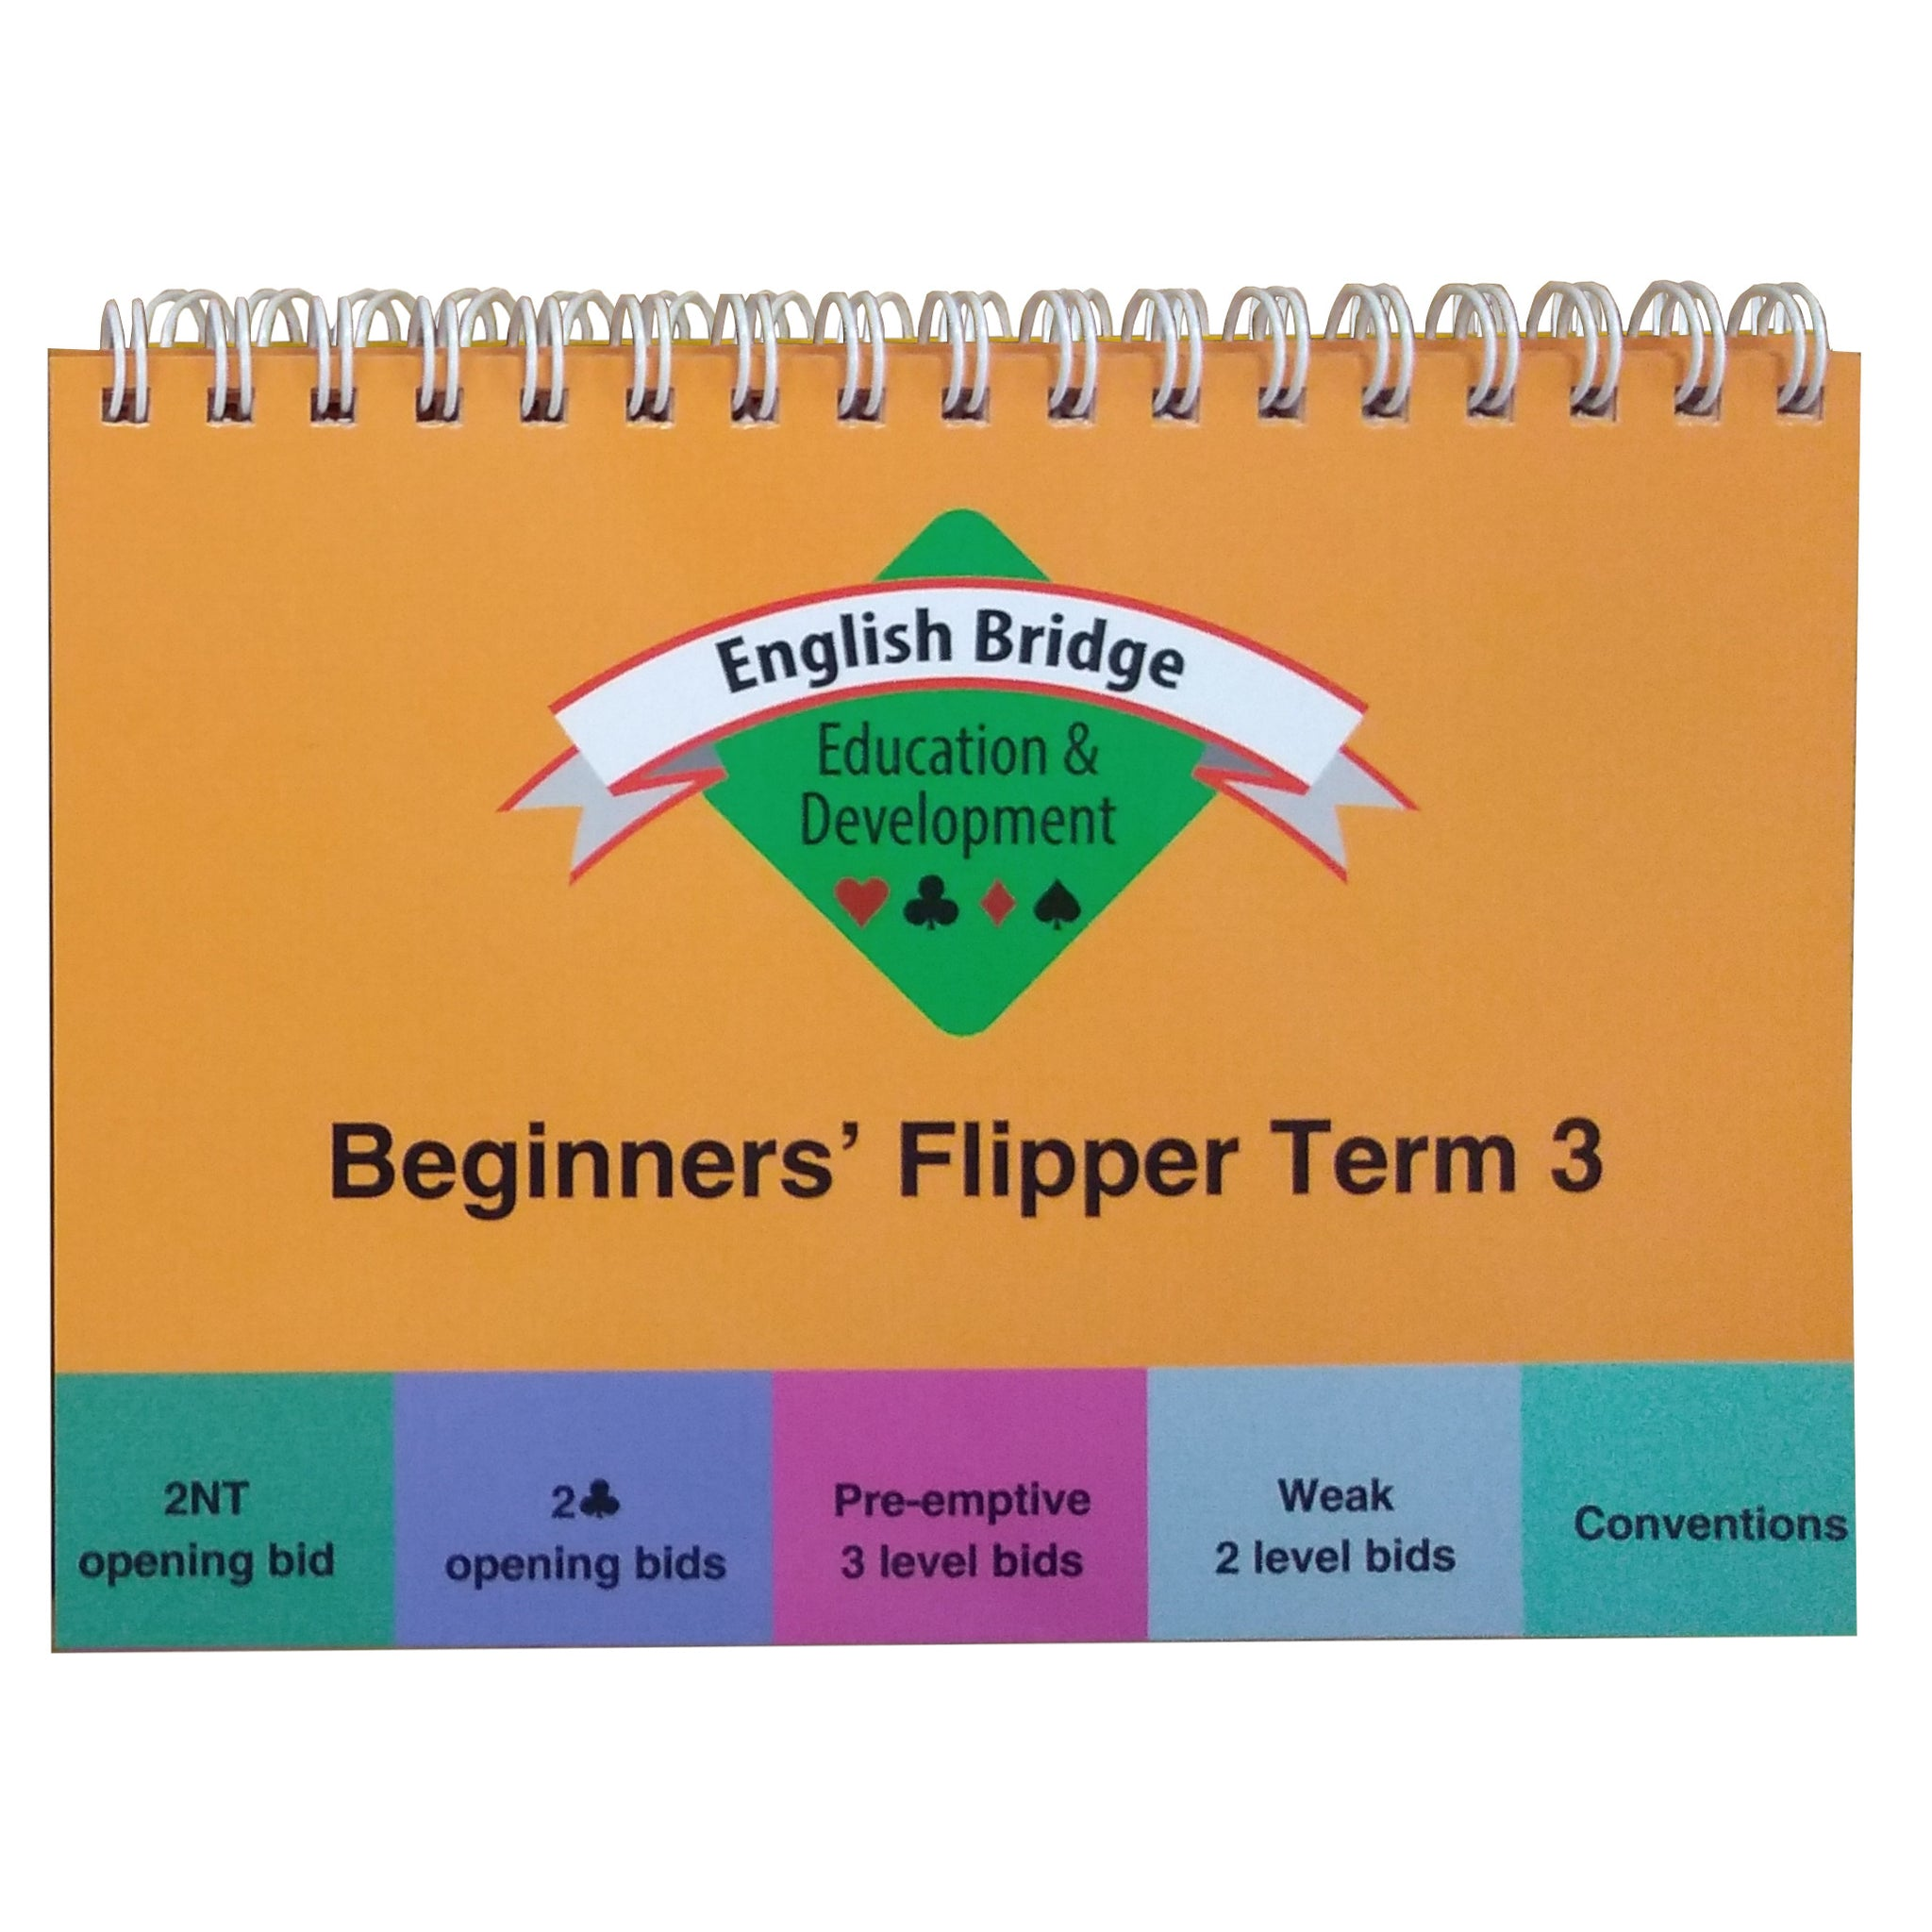 Beginners' Flipper - Term 3